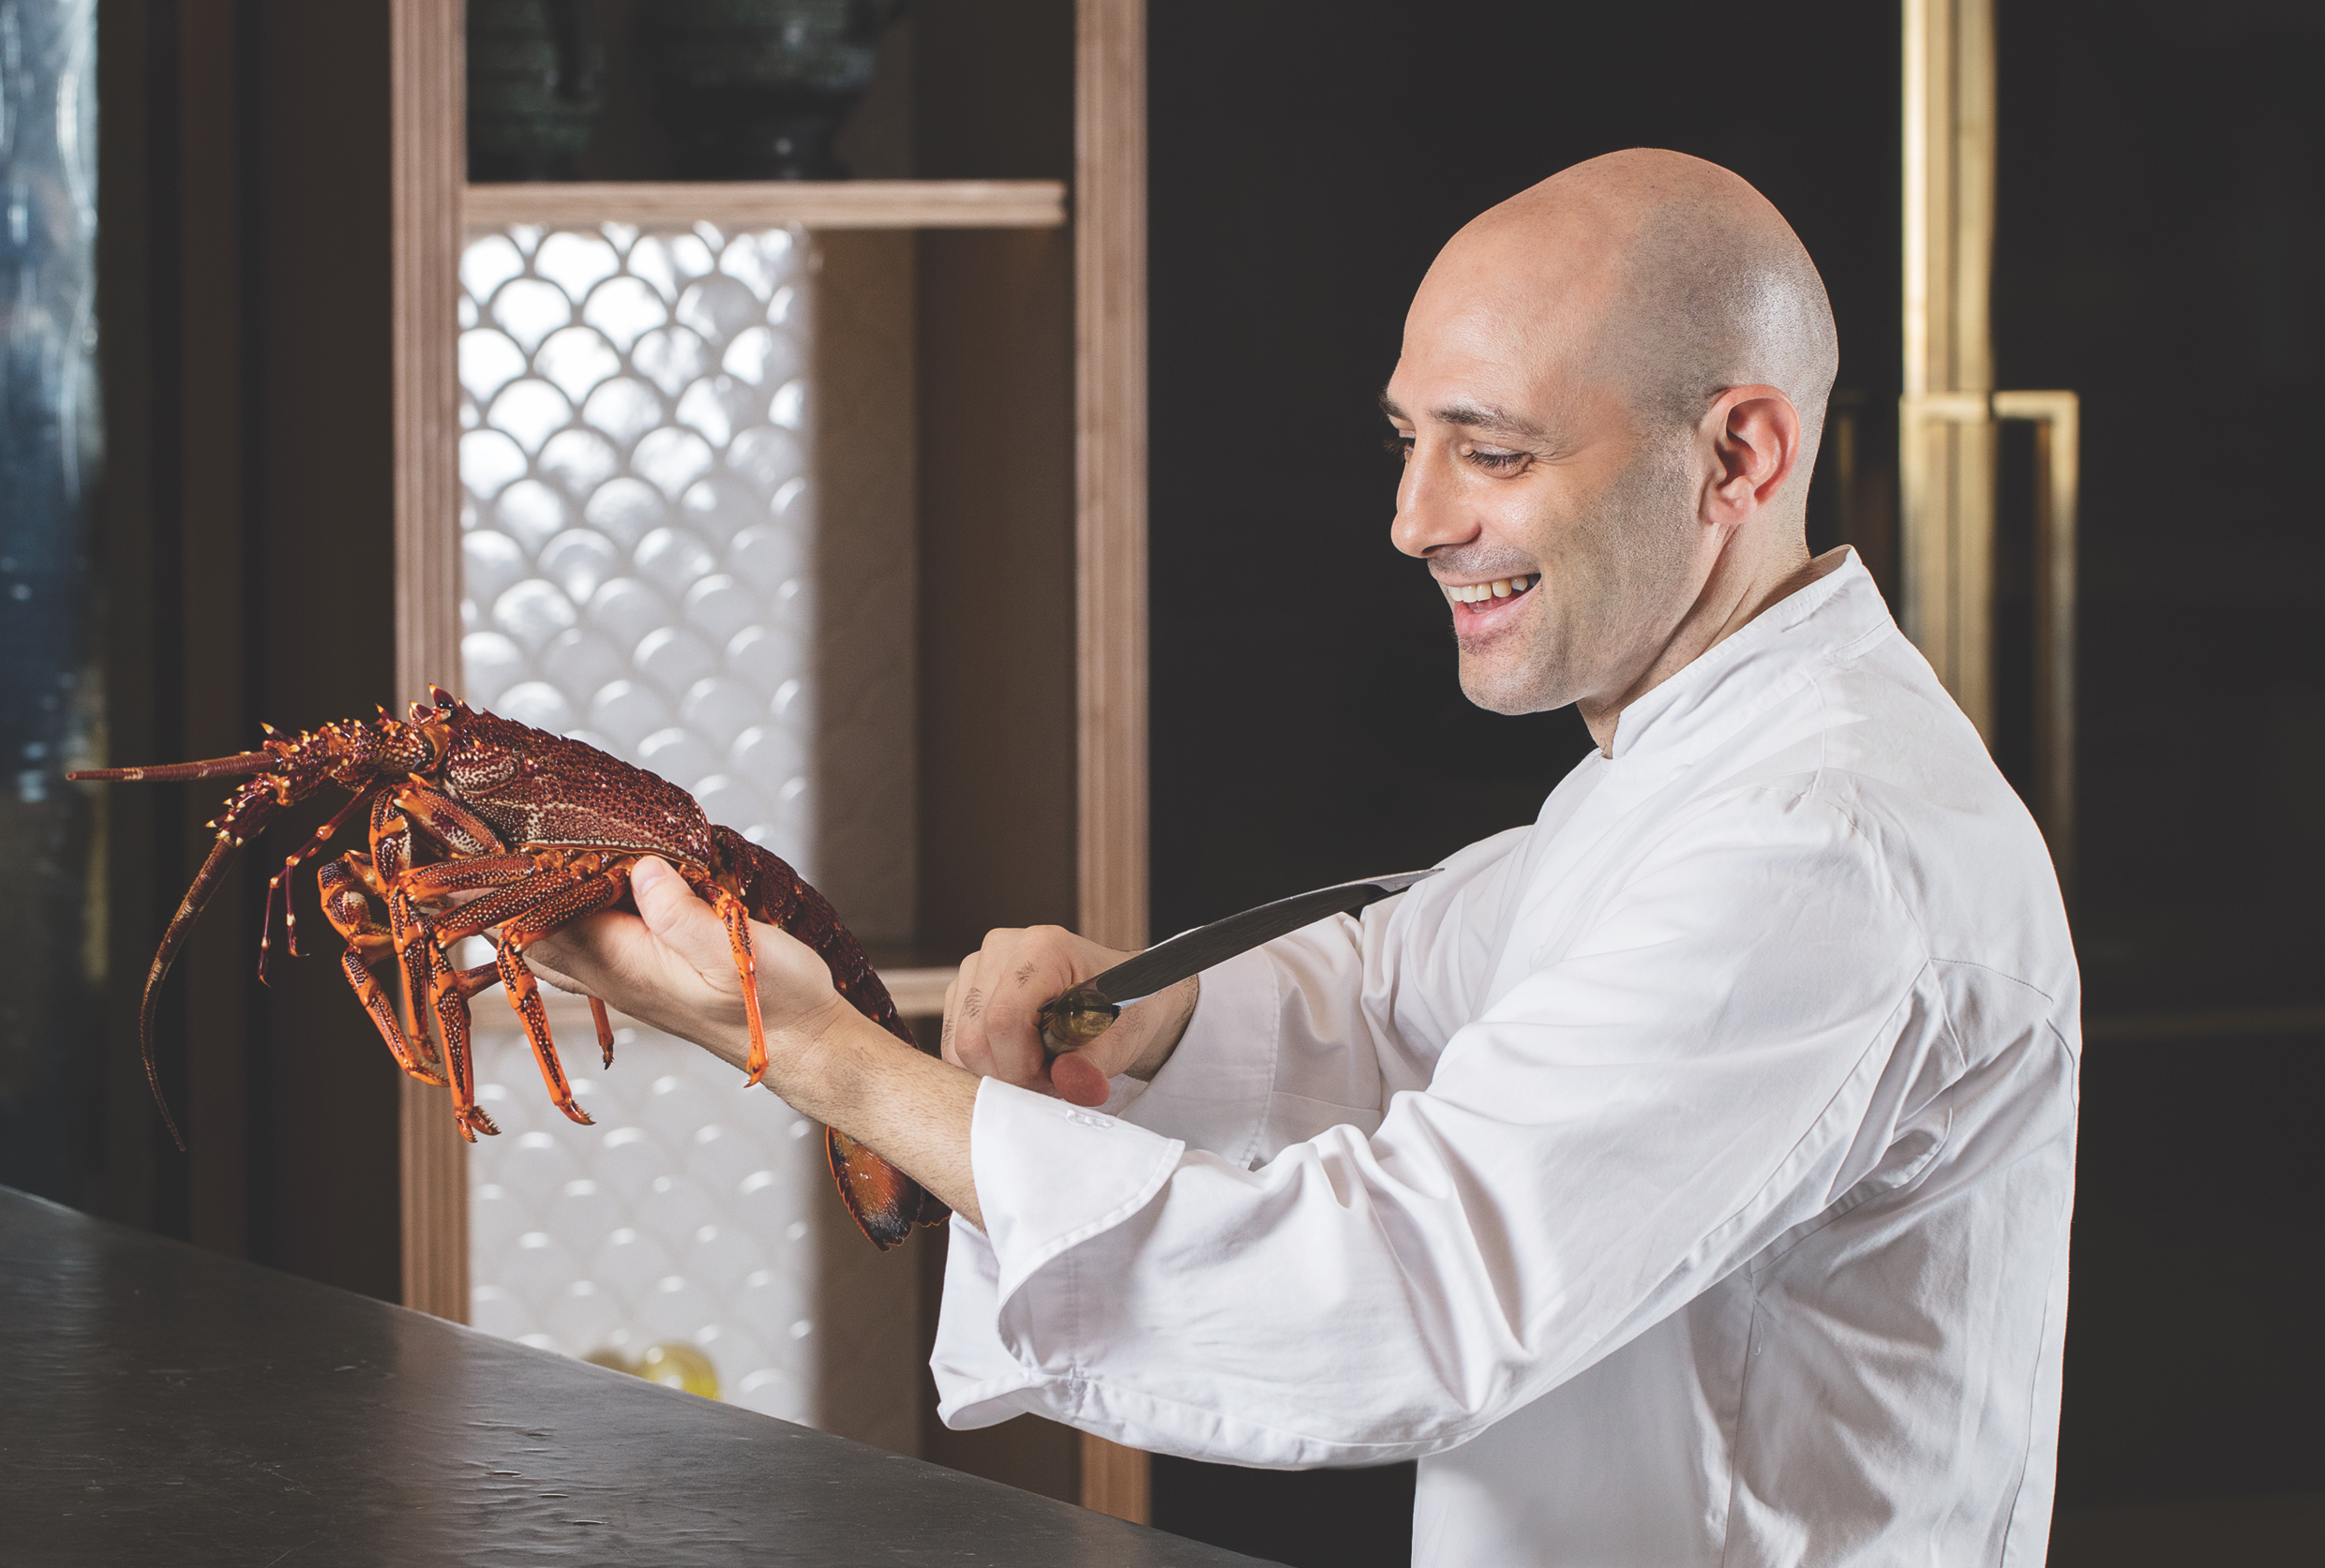 Chef Michele Portrait with Lobster